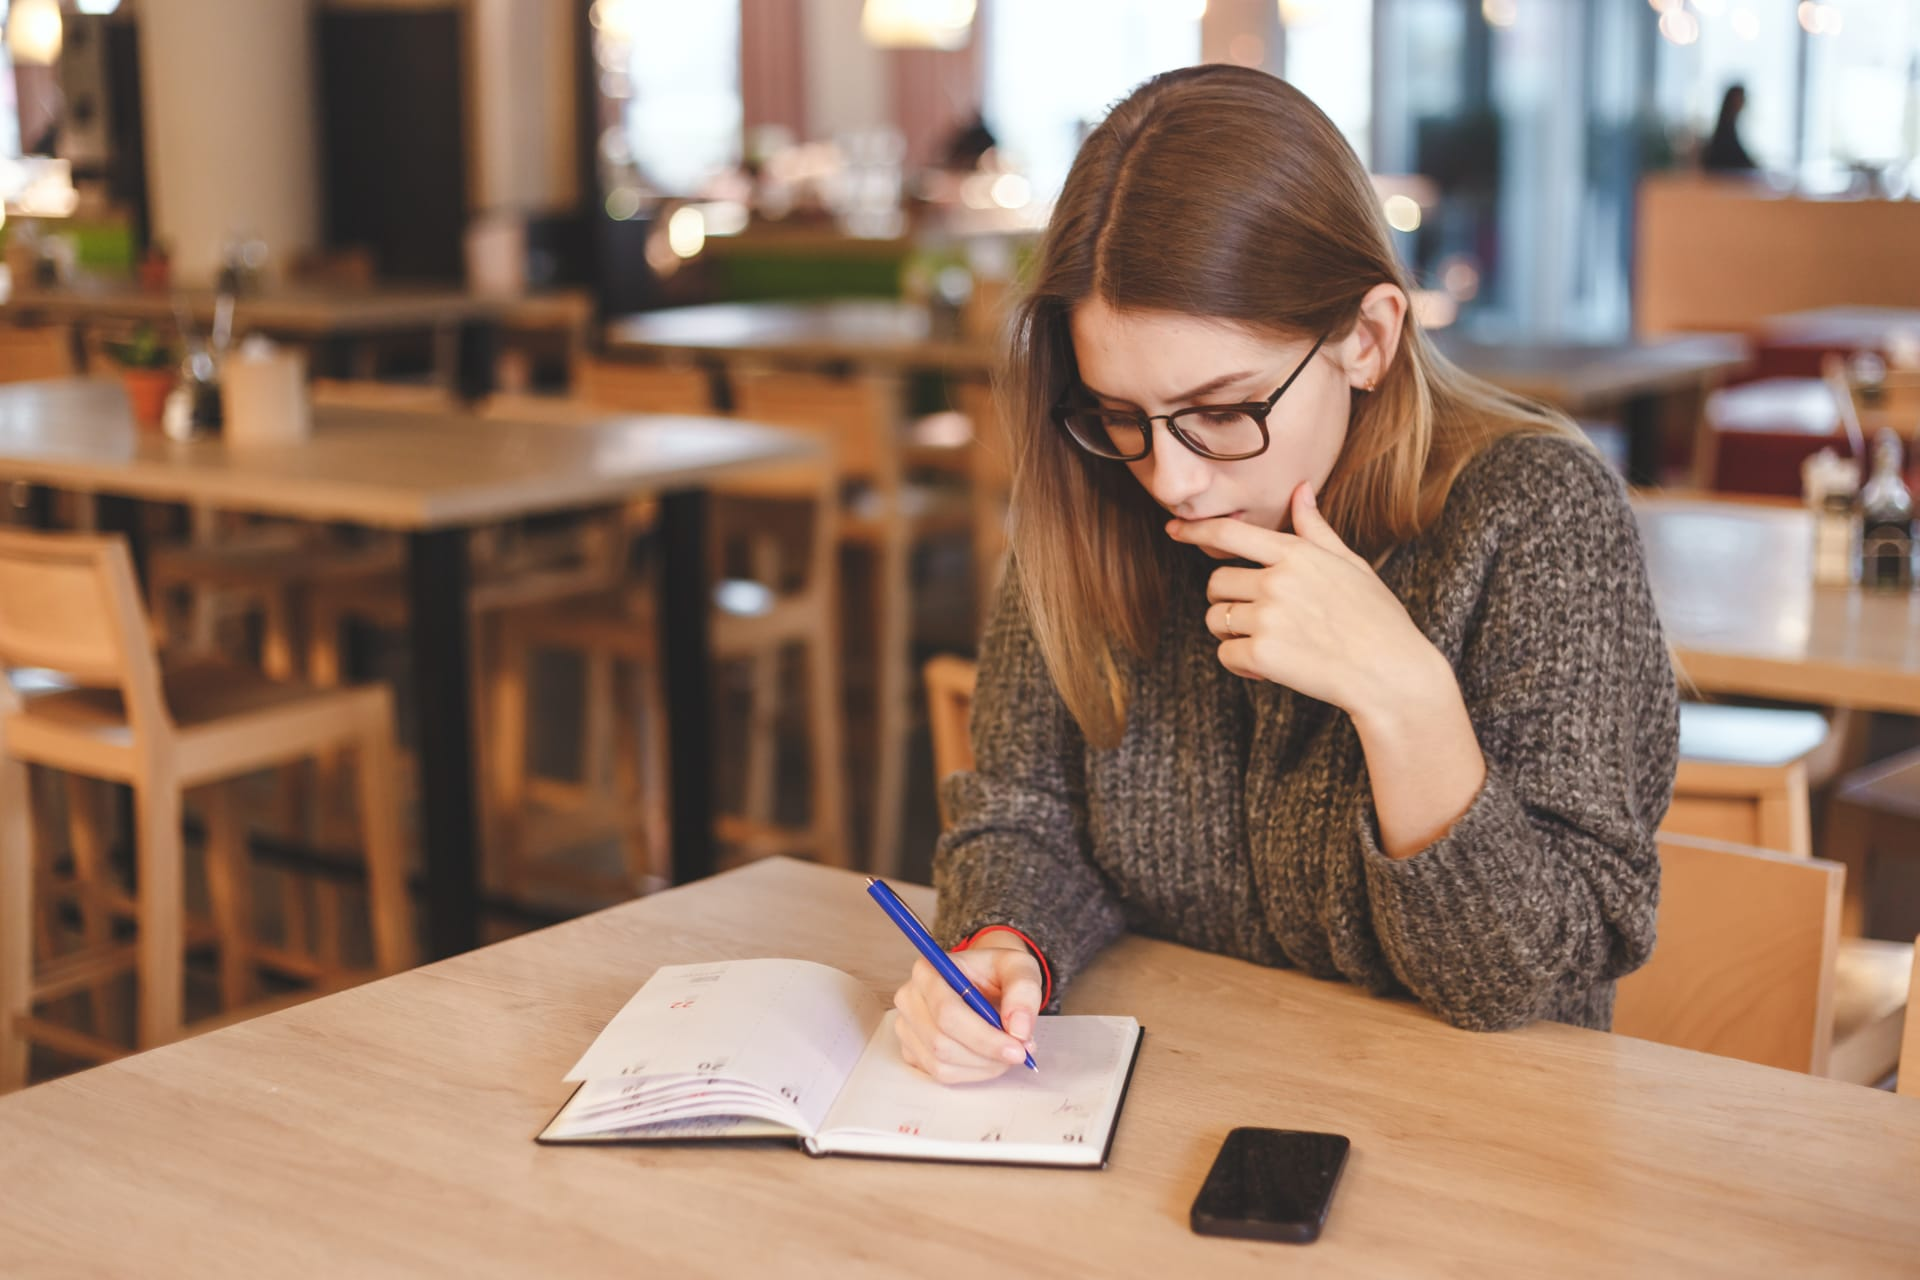 Girl writing in the notebook while sitting at a cafe